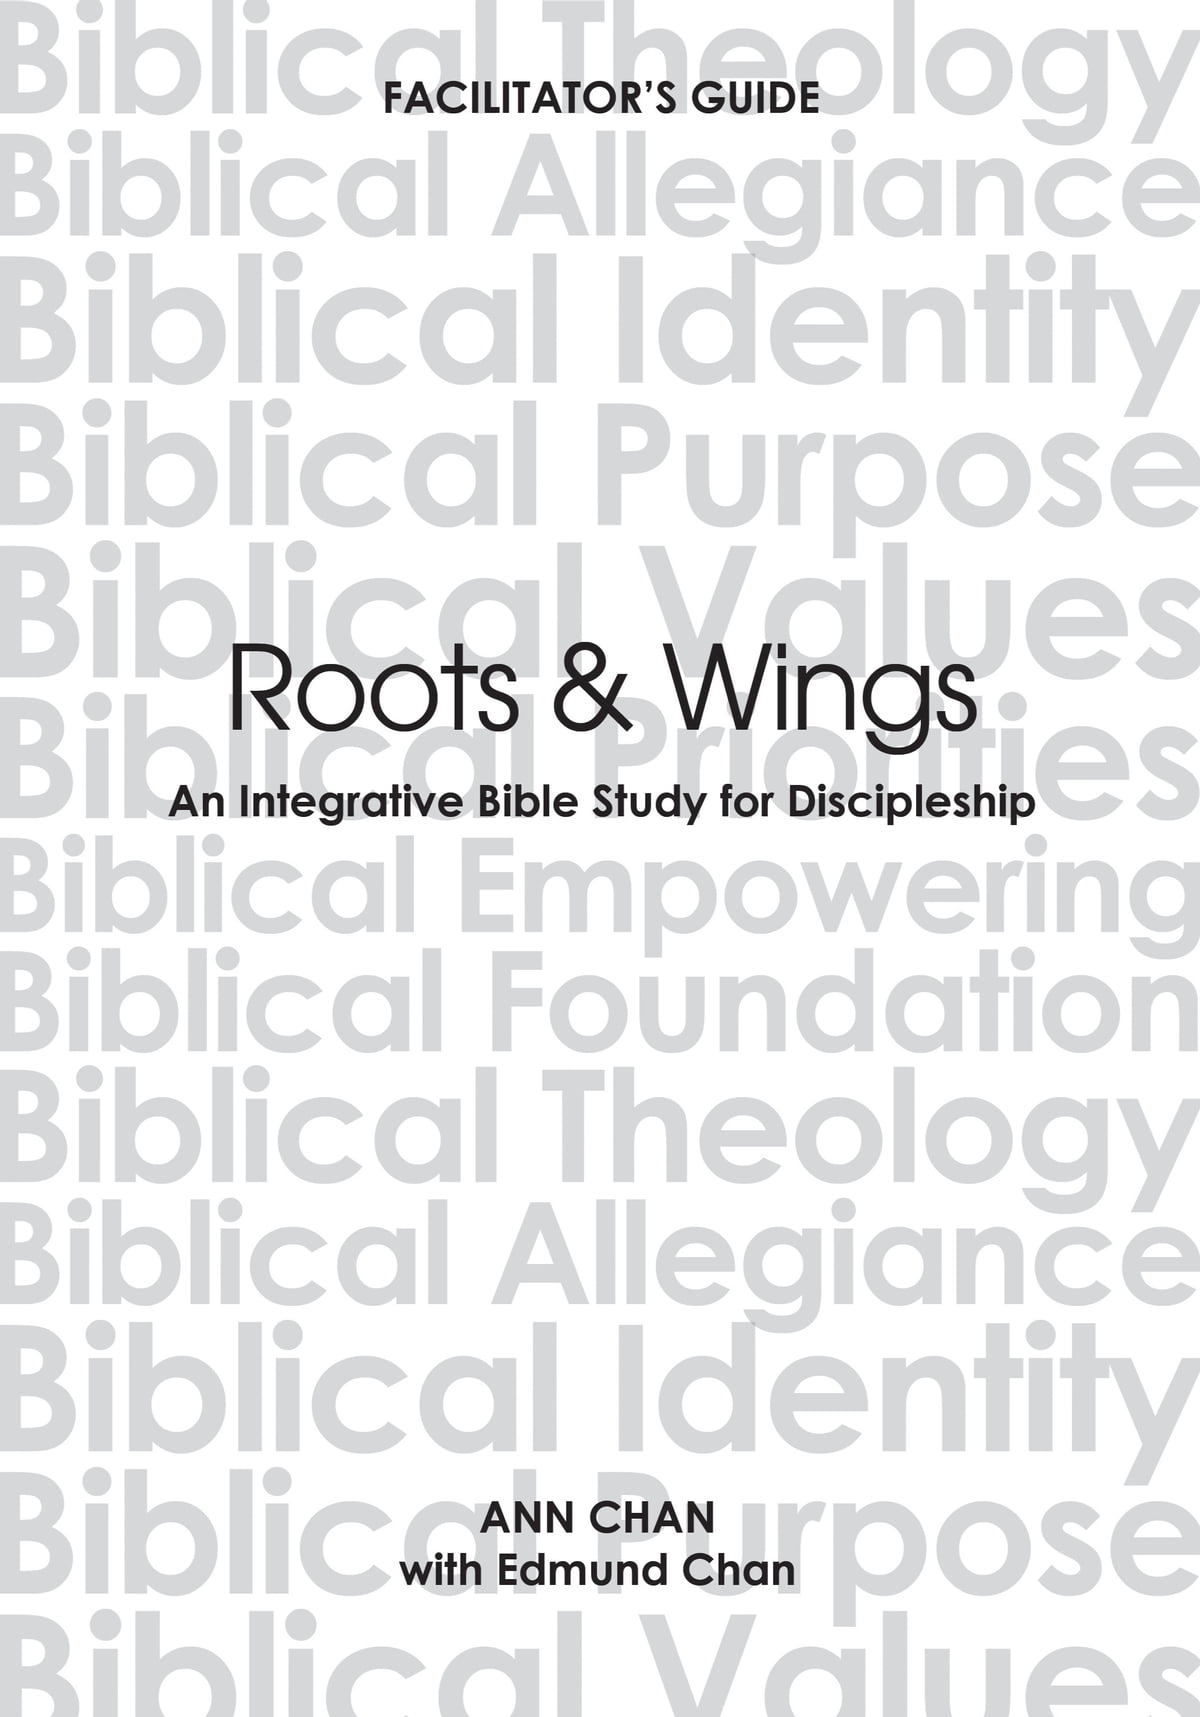 Radical discipleship ebook by edmund chan 1230000686624 rakuten kobo roots wings an integrative bible study for discipleship ebook by ann chan edmund fandeluxe Image collections